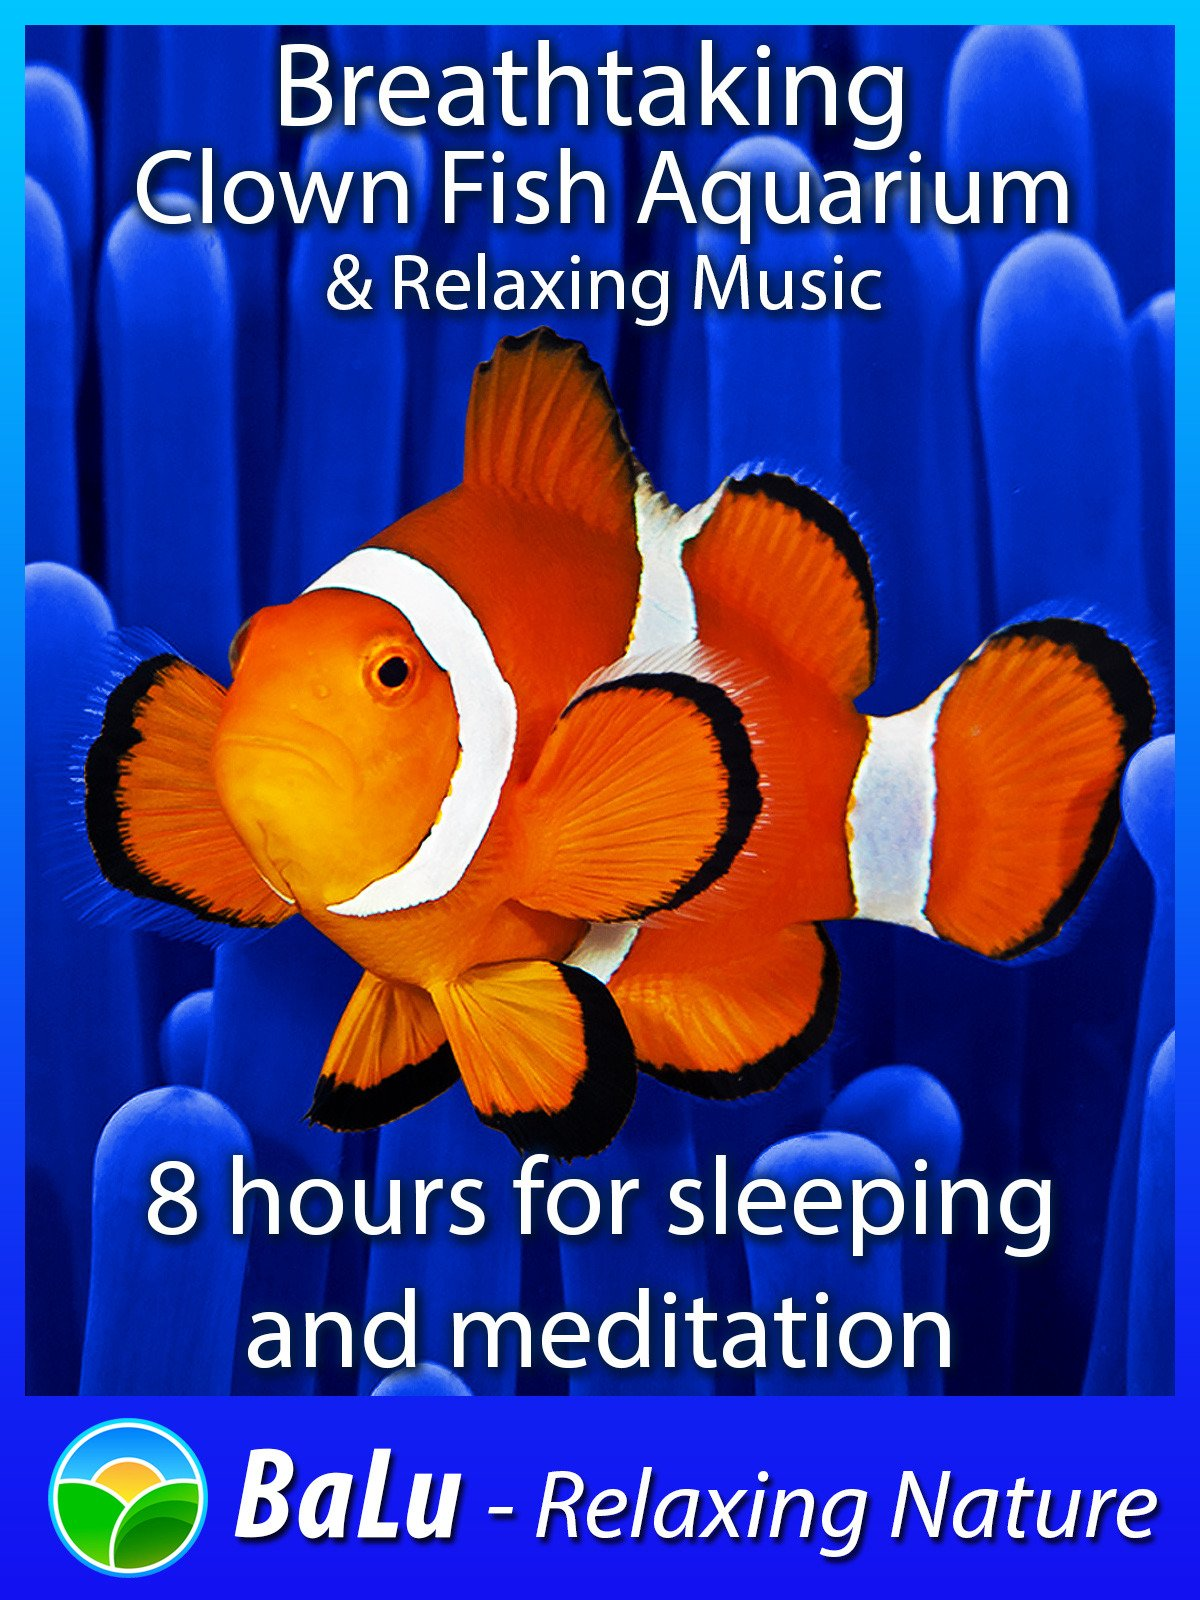 Breathtaking Clown Fish Aquarium & Relaxing Music